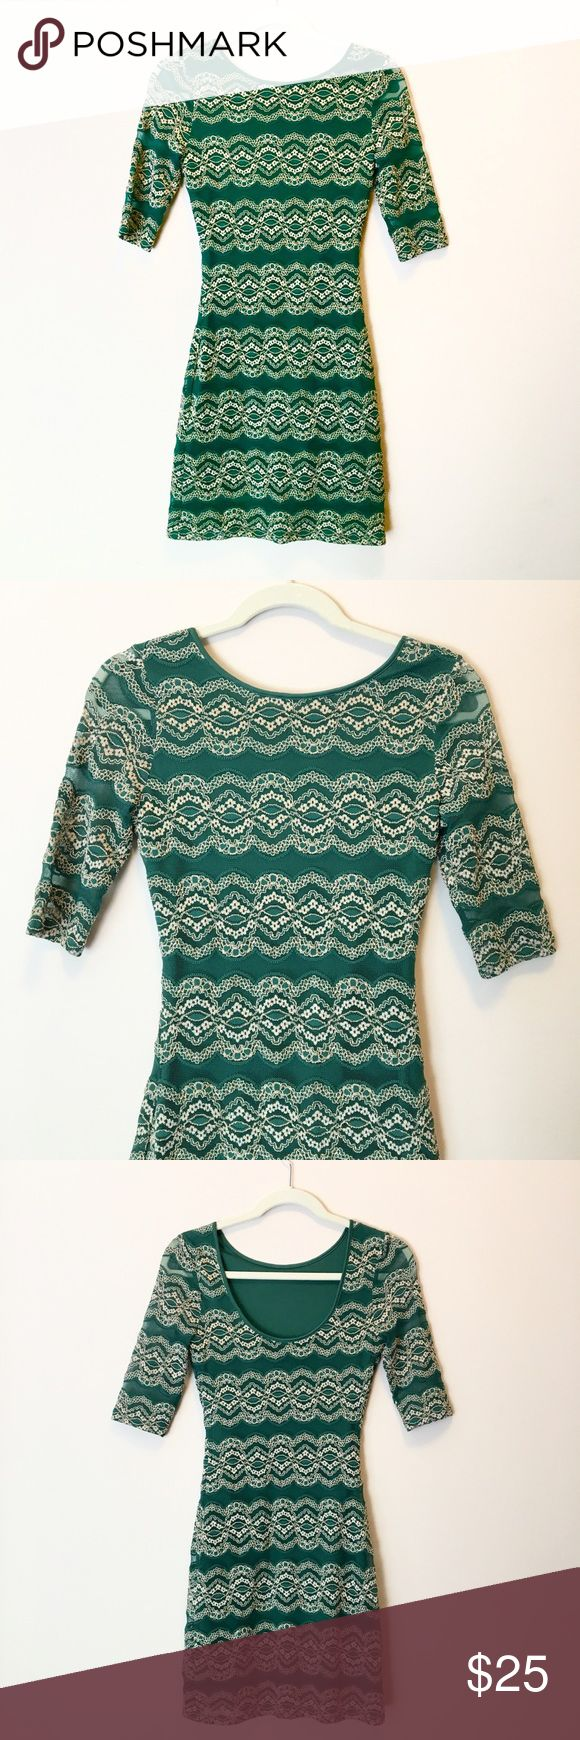 Gianni Bini Green & Gold Lace Bodycon Dress Dark green bodycon dress with shimmery metallic gold lace stripes by Gianni Bini.  Three quarter length sleeves, low scoop back.  Size Extra-Small, XS.  Excellent condition! Gianni Bini Dresses Mini